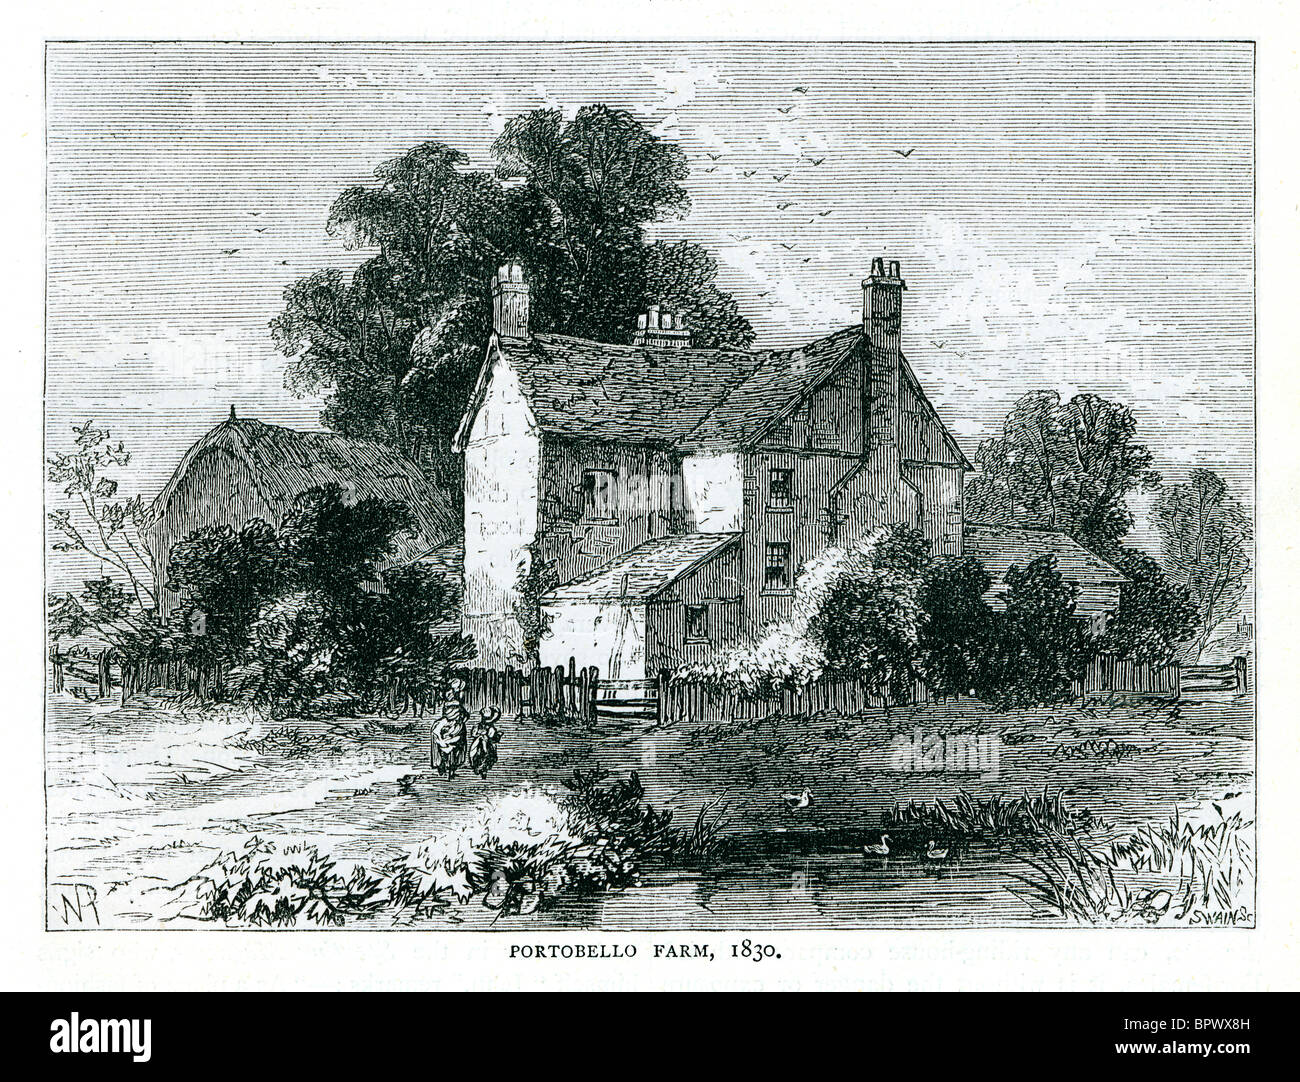 Portobello Farm, 1830 engraving of the property named after the city in the Spanish Main, on what became the Portobello - Stock Image